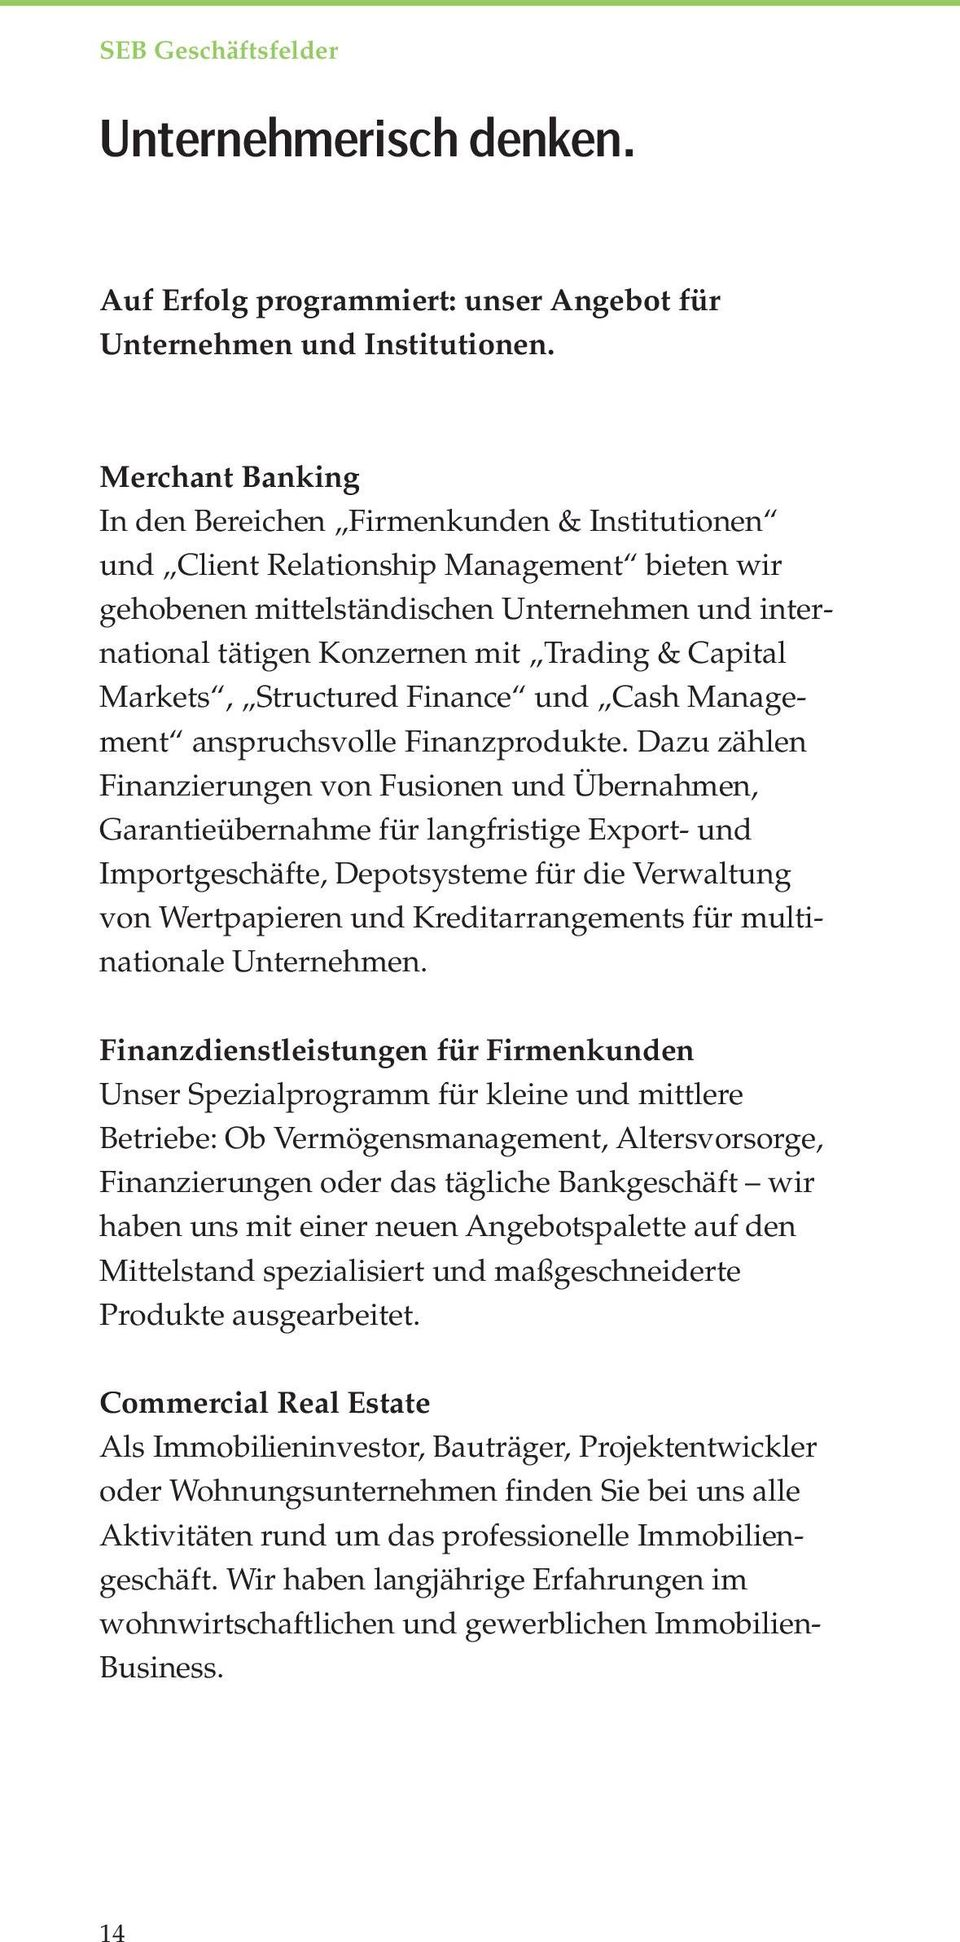 Capital Markets, Structured Finance und Cash Management anspruchsvolle Finanzprodukte.